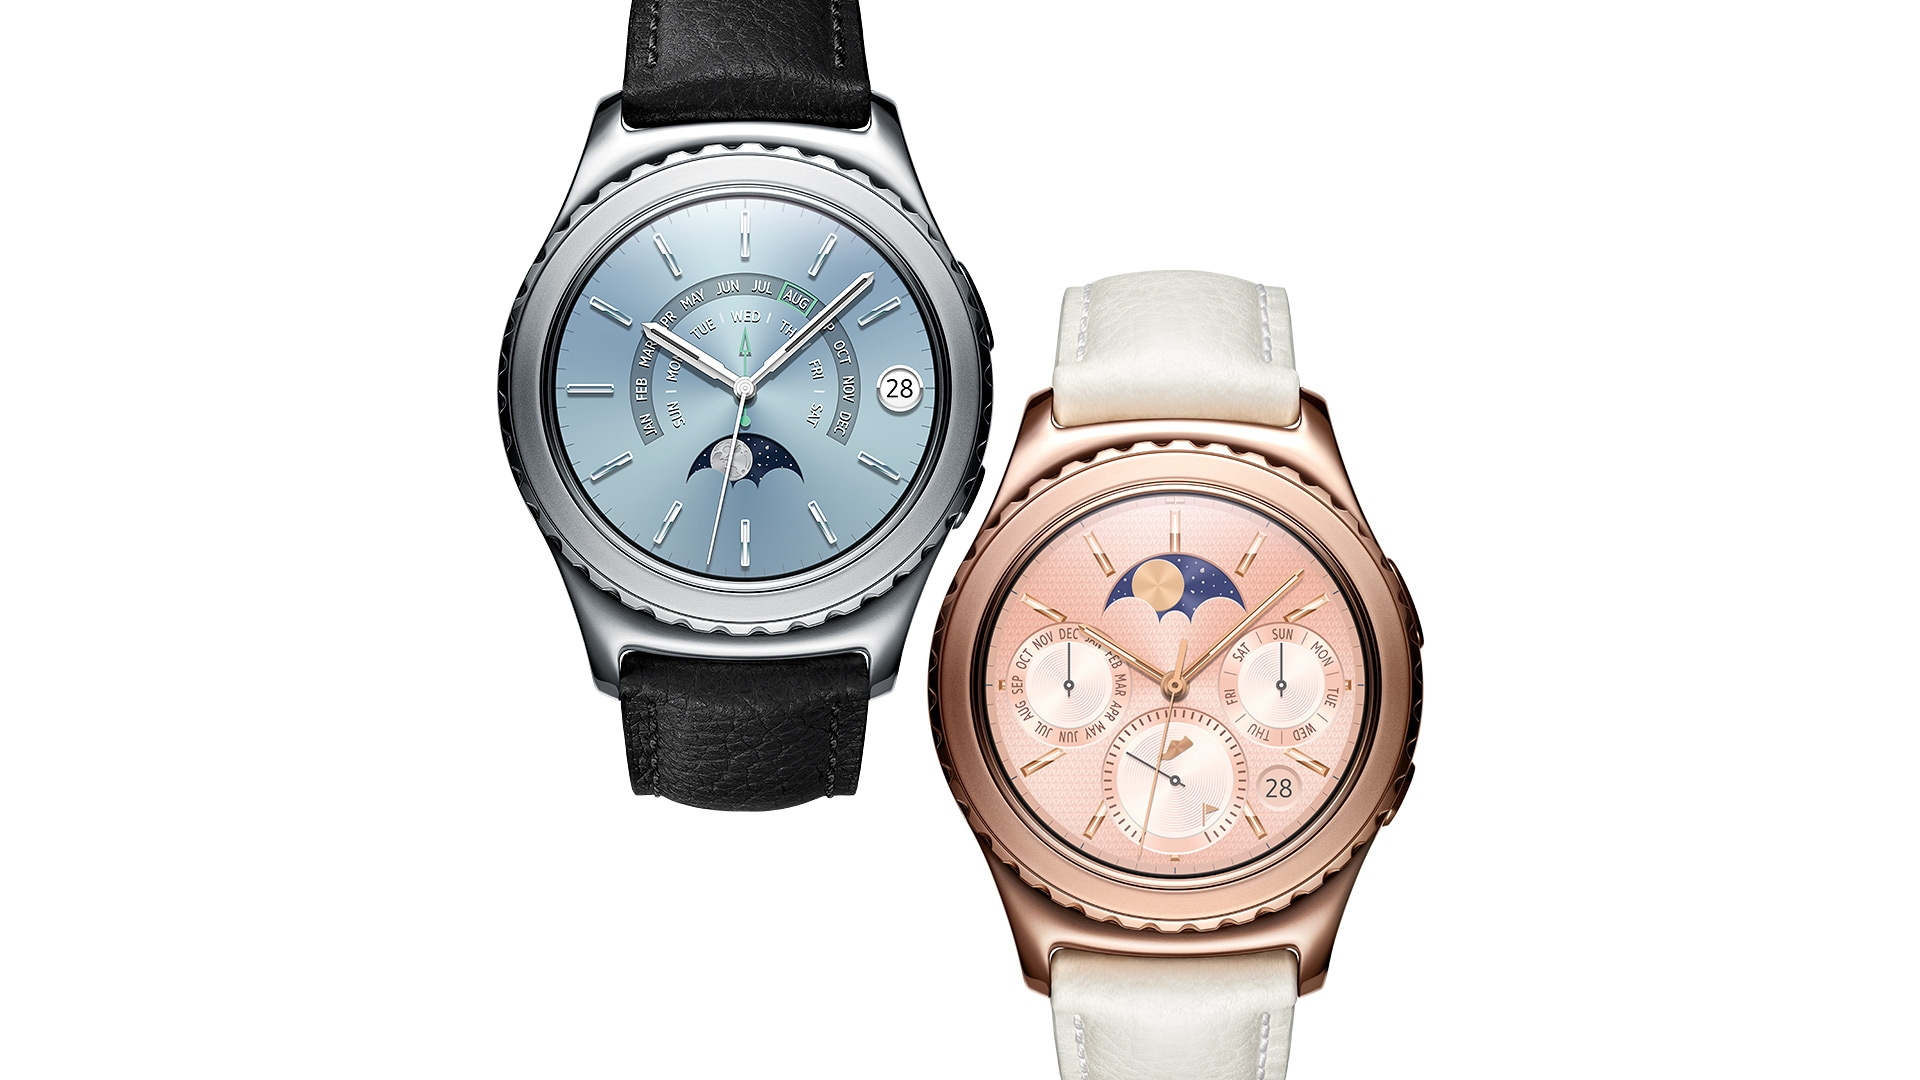 Platinum Gear S2 classic and rose gold gear s2 classic side by side